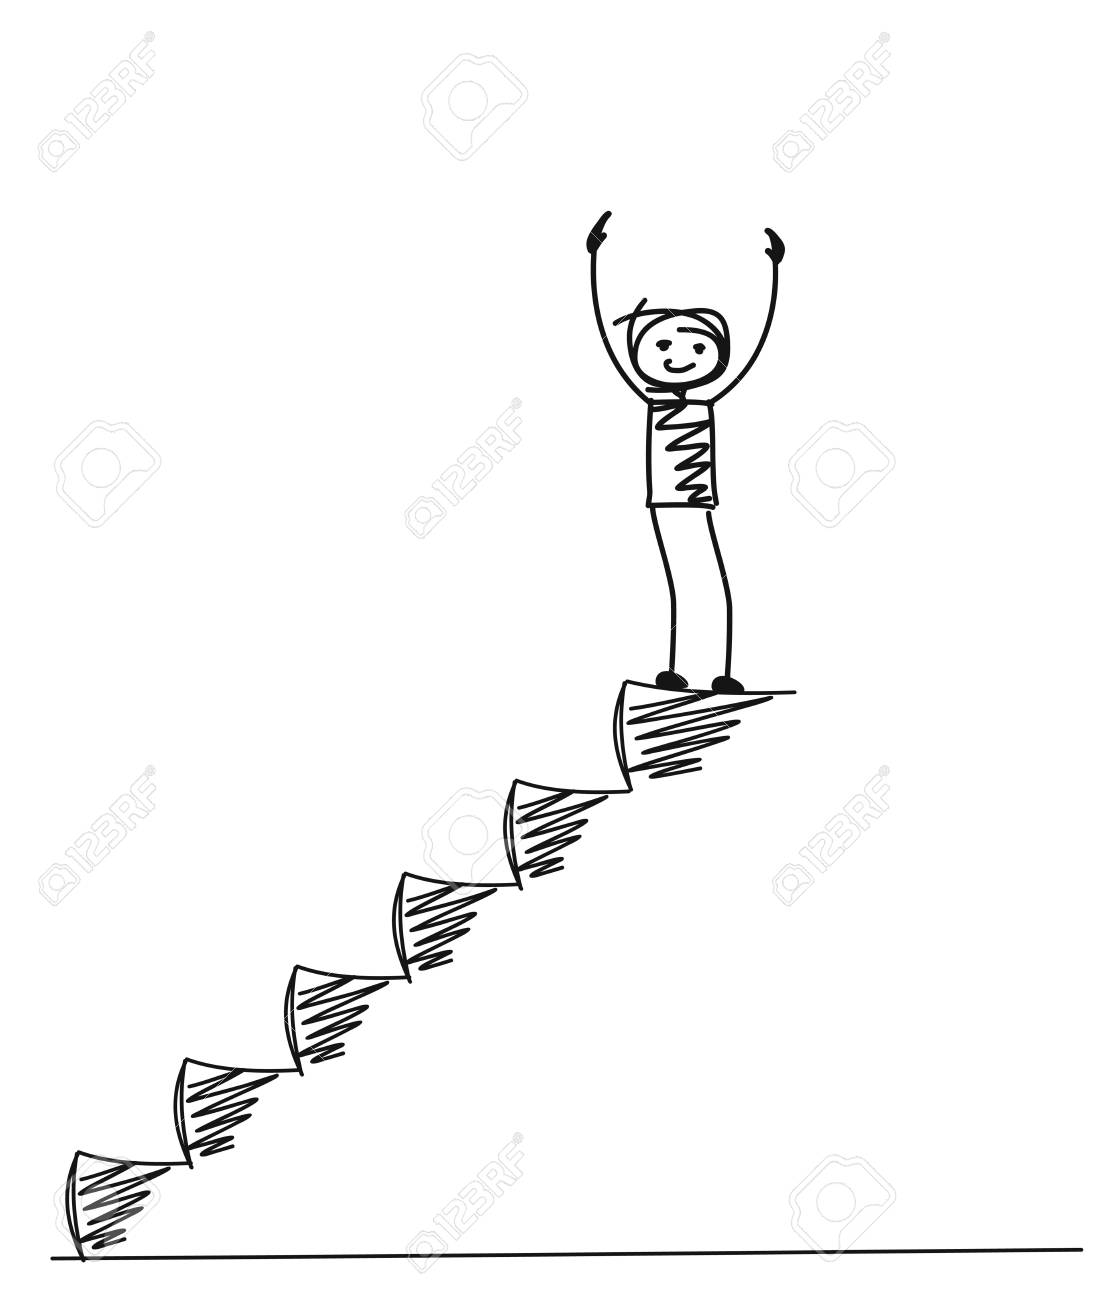 Man on top of the stairs, Cartoon Hand Drawn Vector Background. - 96123288